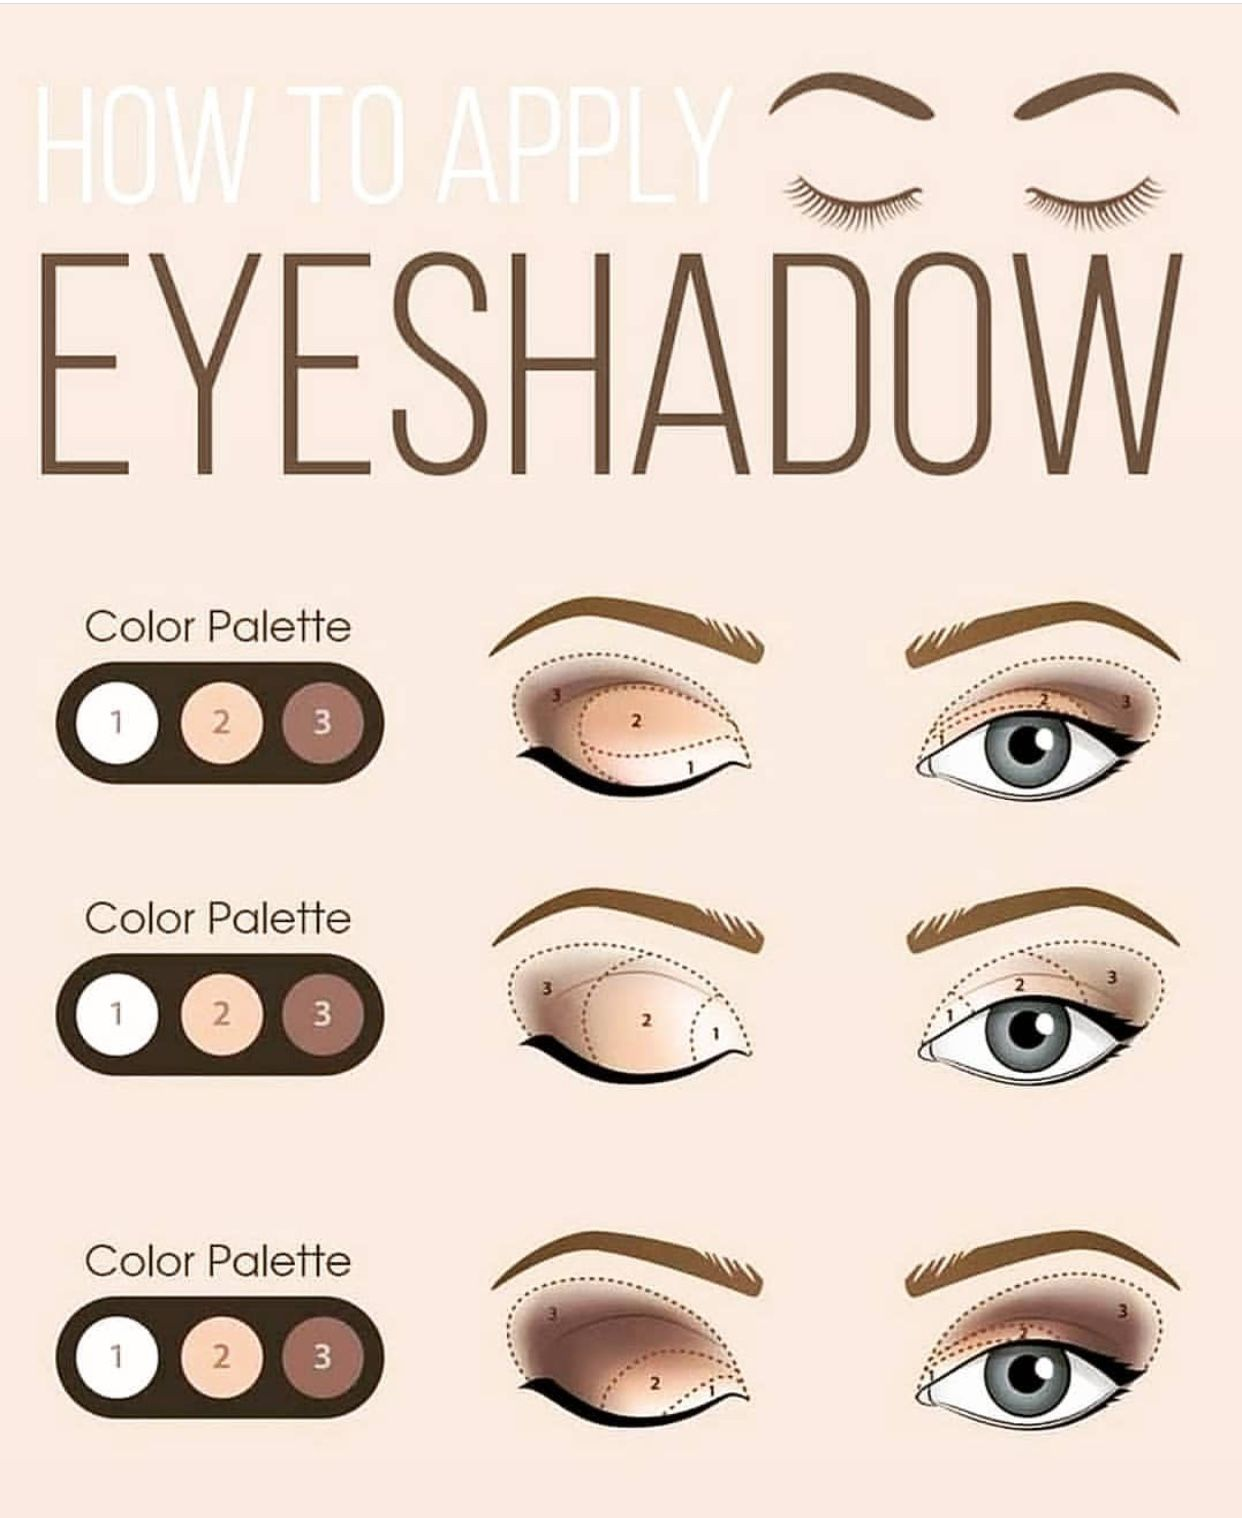 How to apply eyeshadow tips!😍🌟 Eyeshadow guide, How to